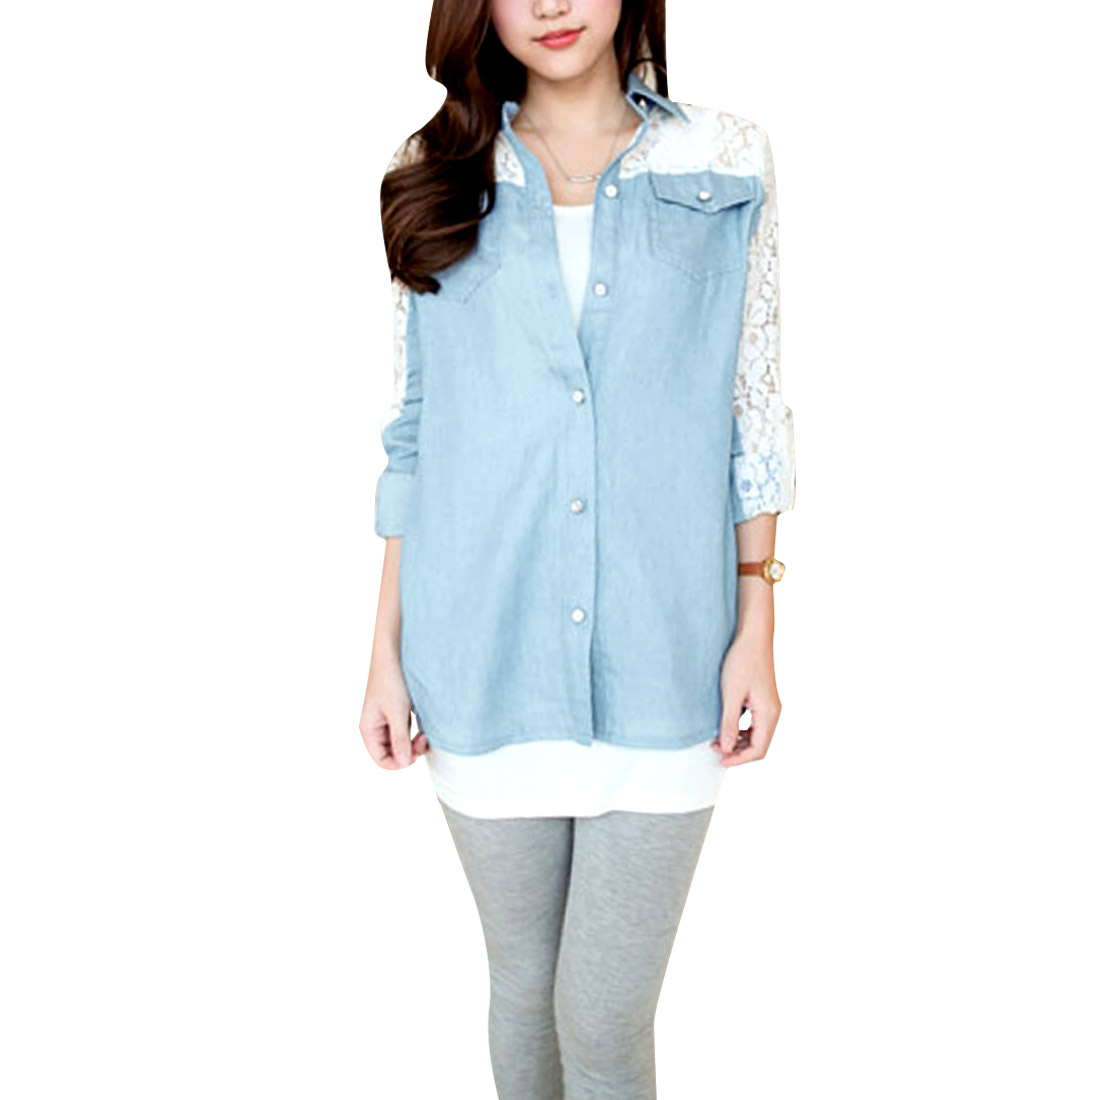 Women's Point Collar Long Semi-sheer Sleeves Pocket Fashion Blue Blouse S